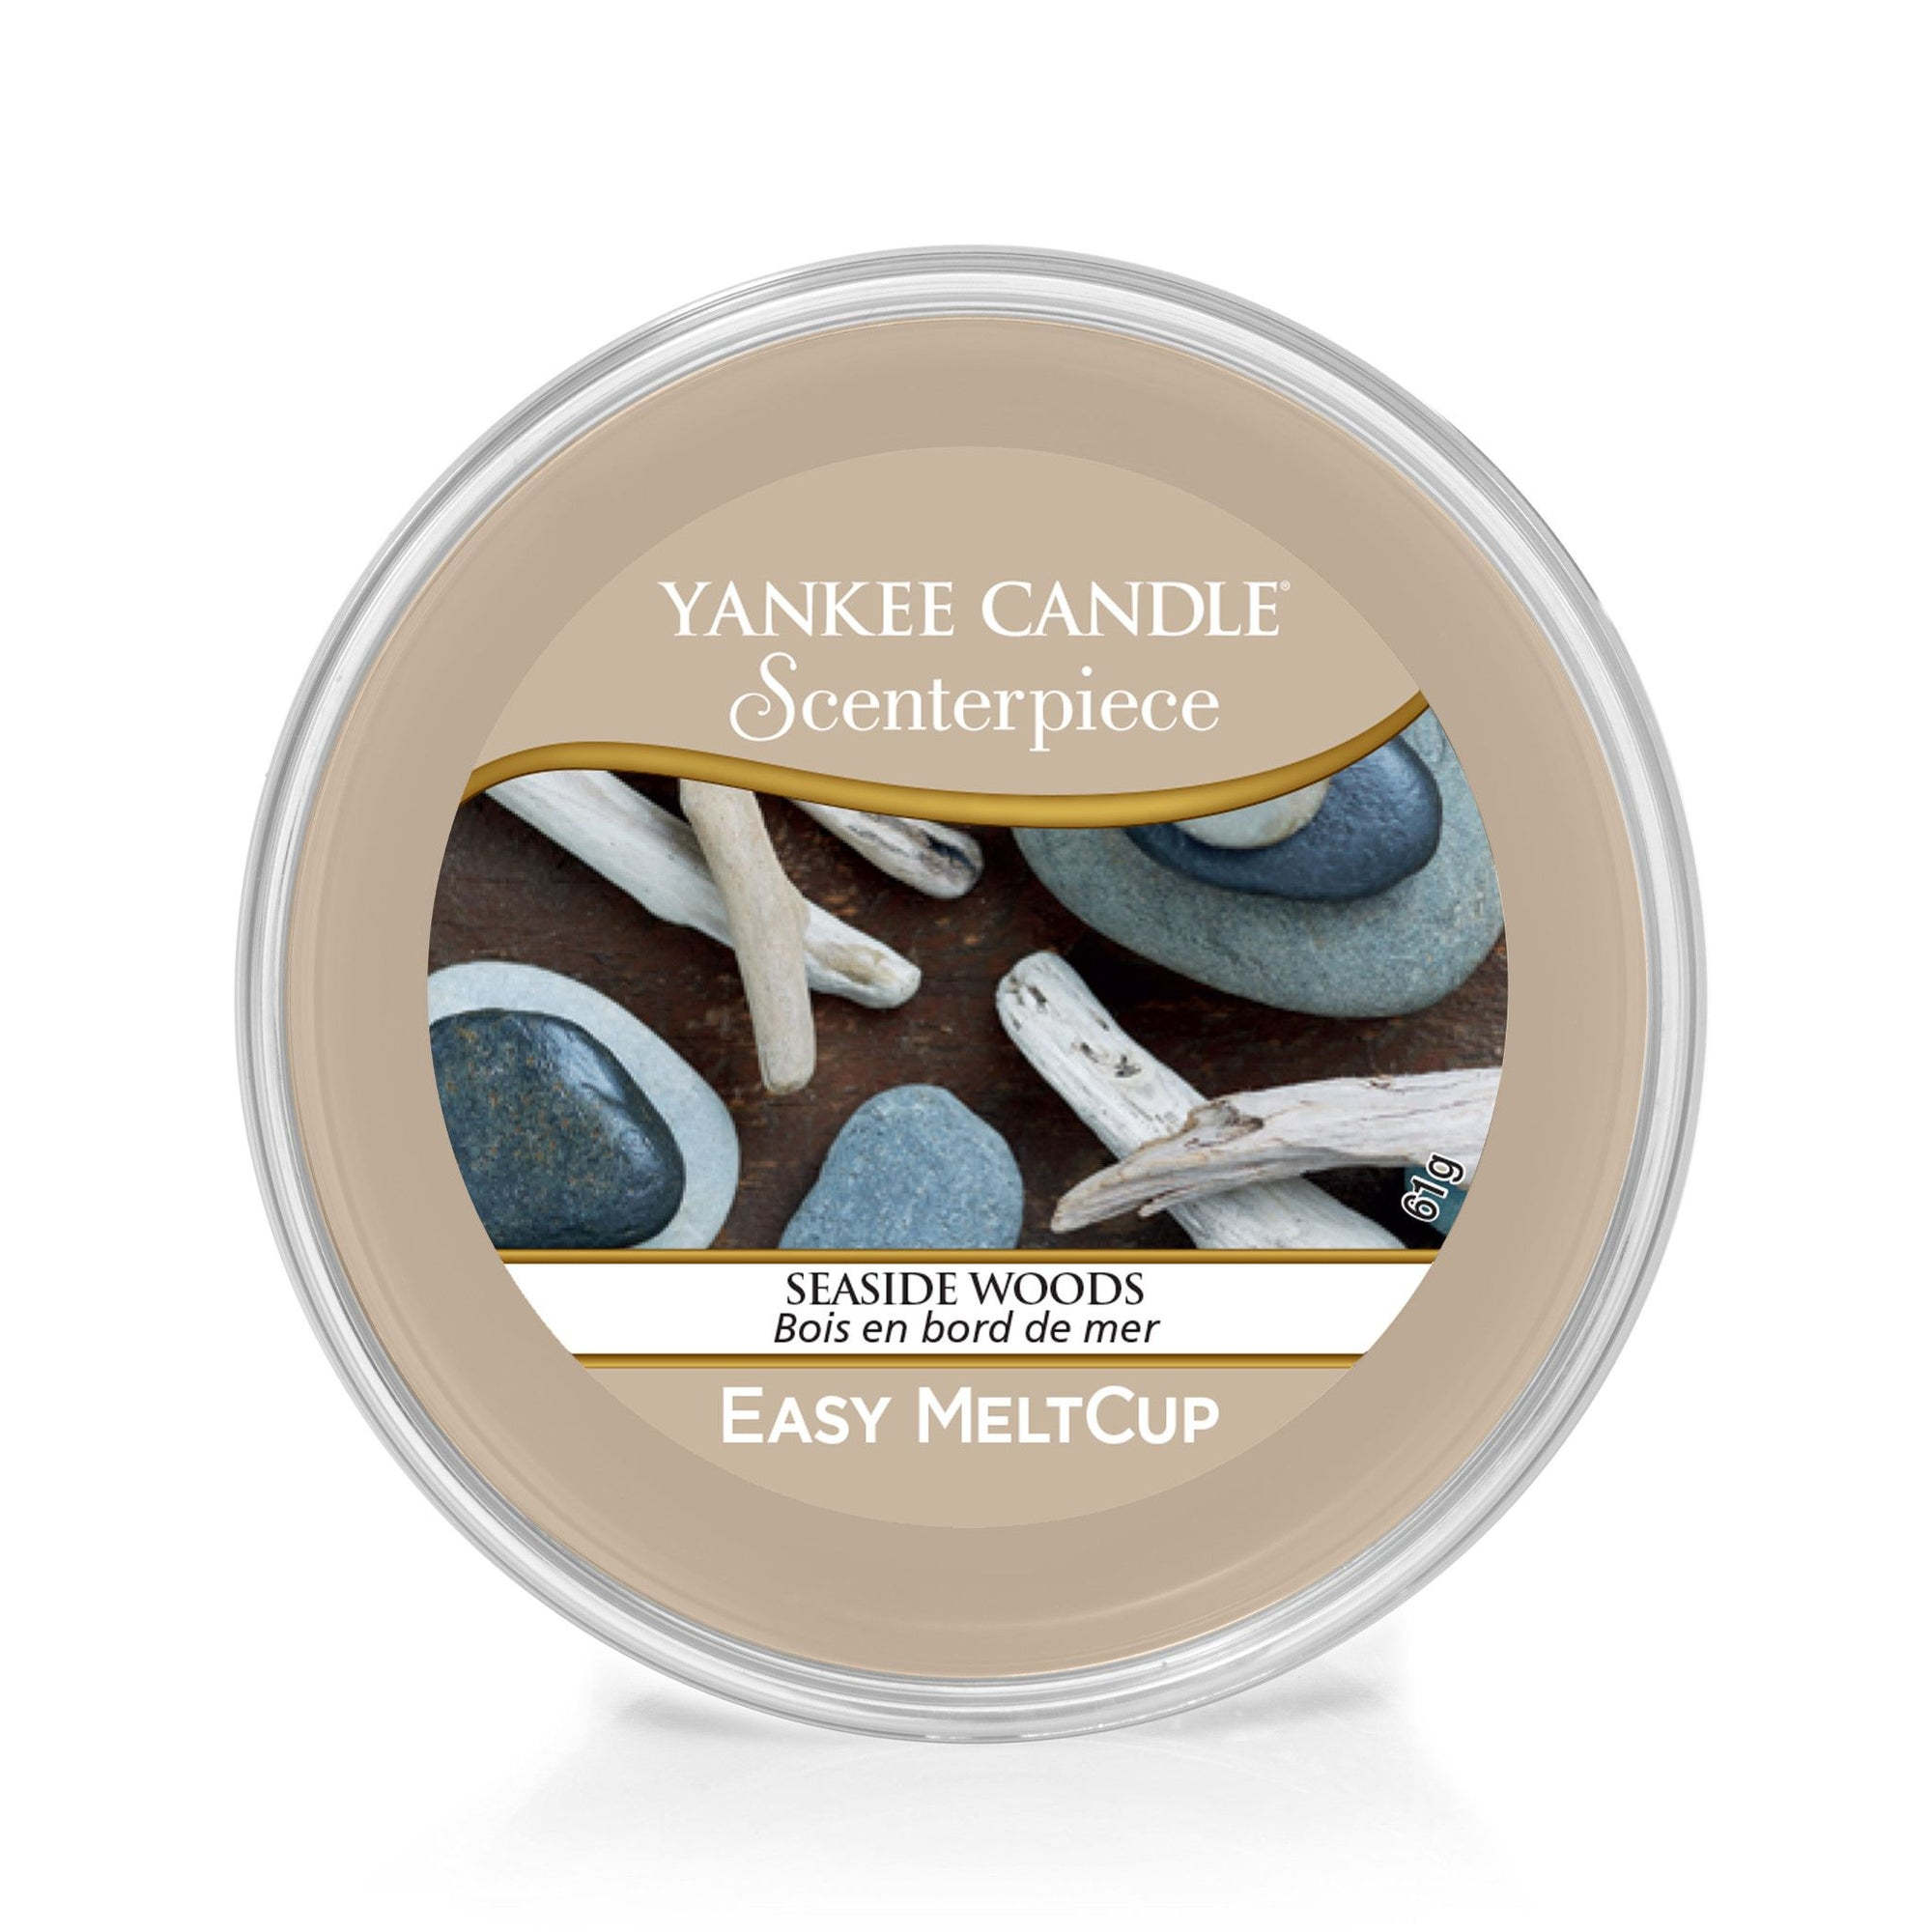 Yankee Candle Seaside Woods Scenterpiece Melt Cup - TOSYS Candles and Gifts